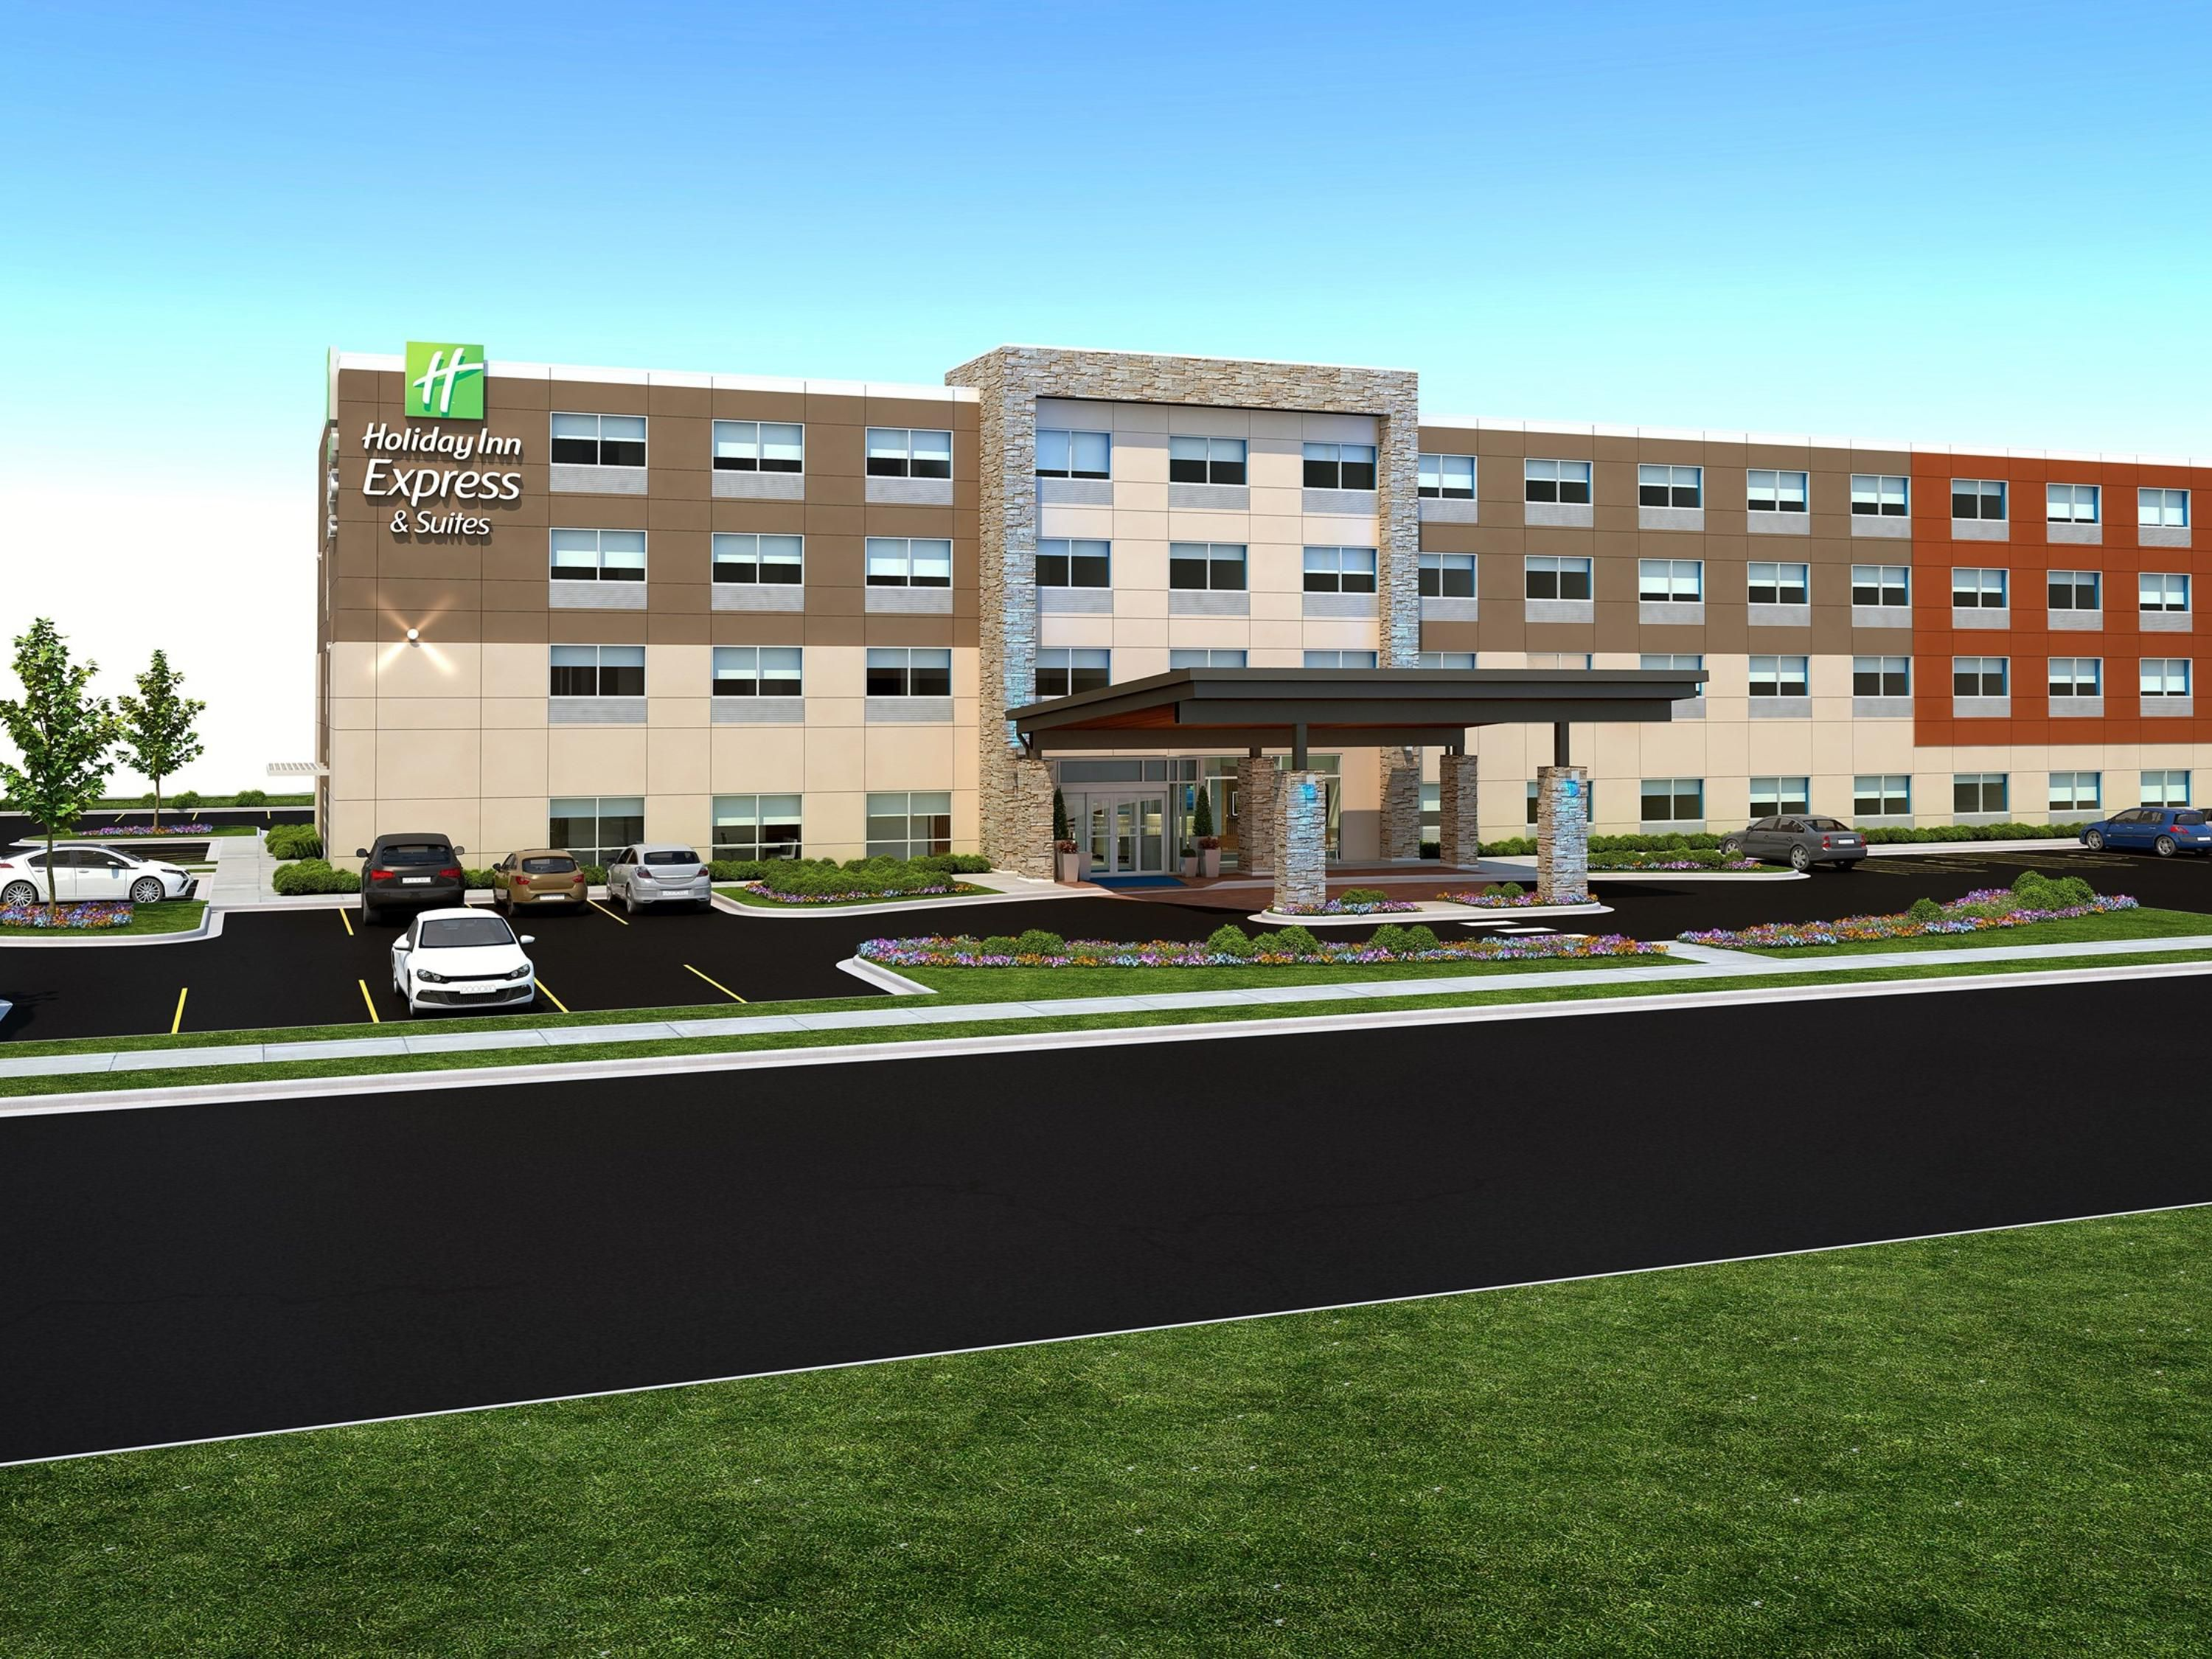 holiday inn express and suites portland 4x3